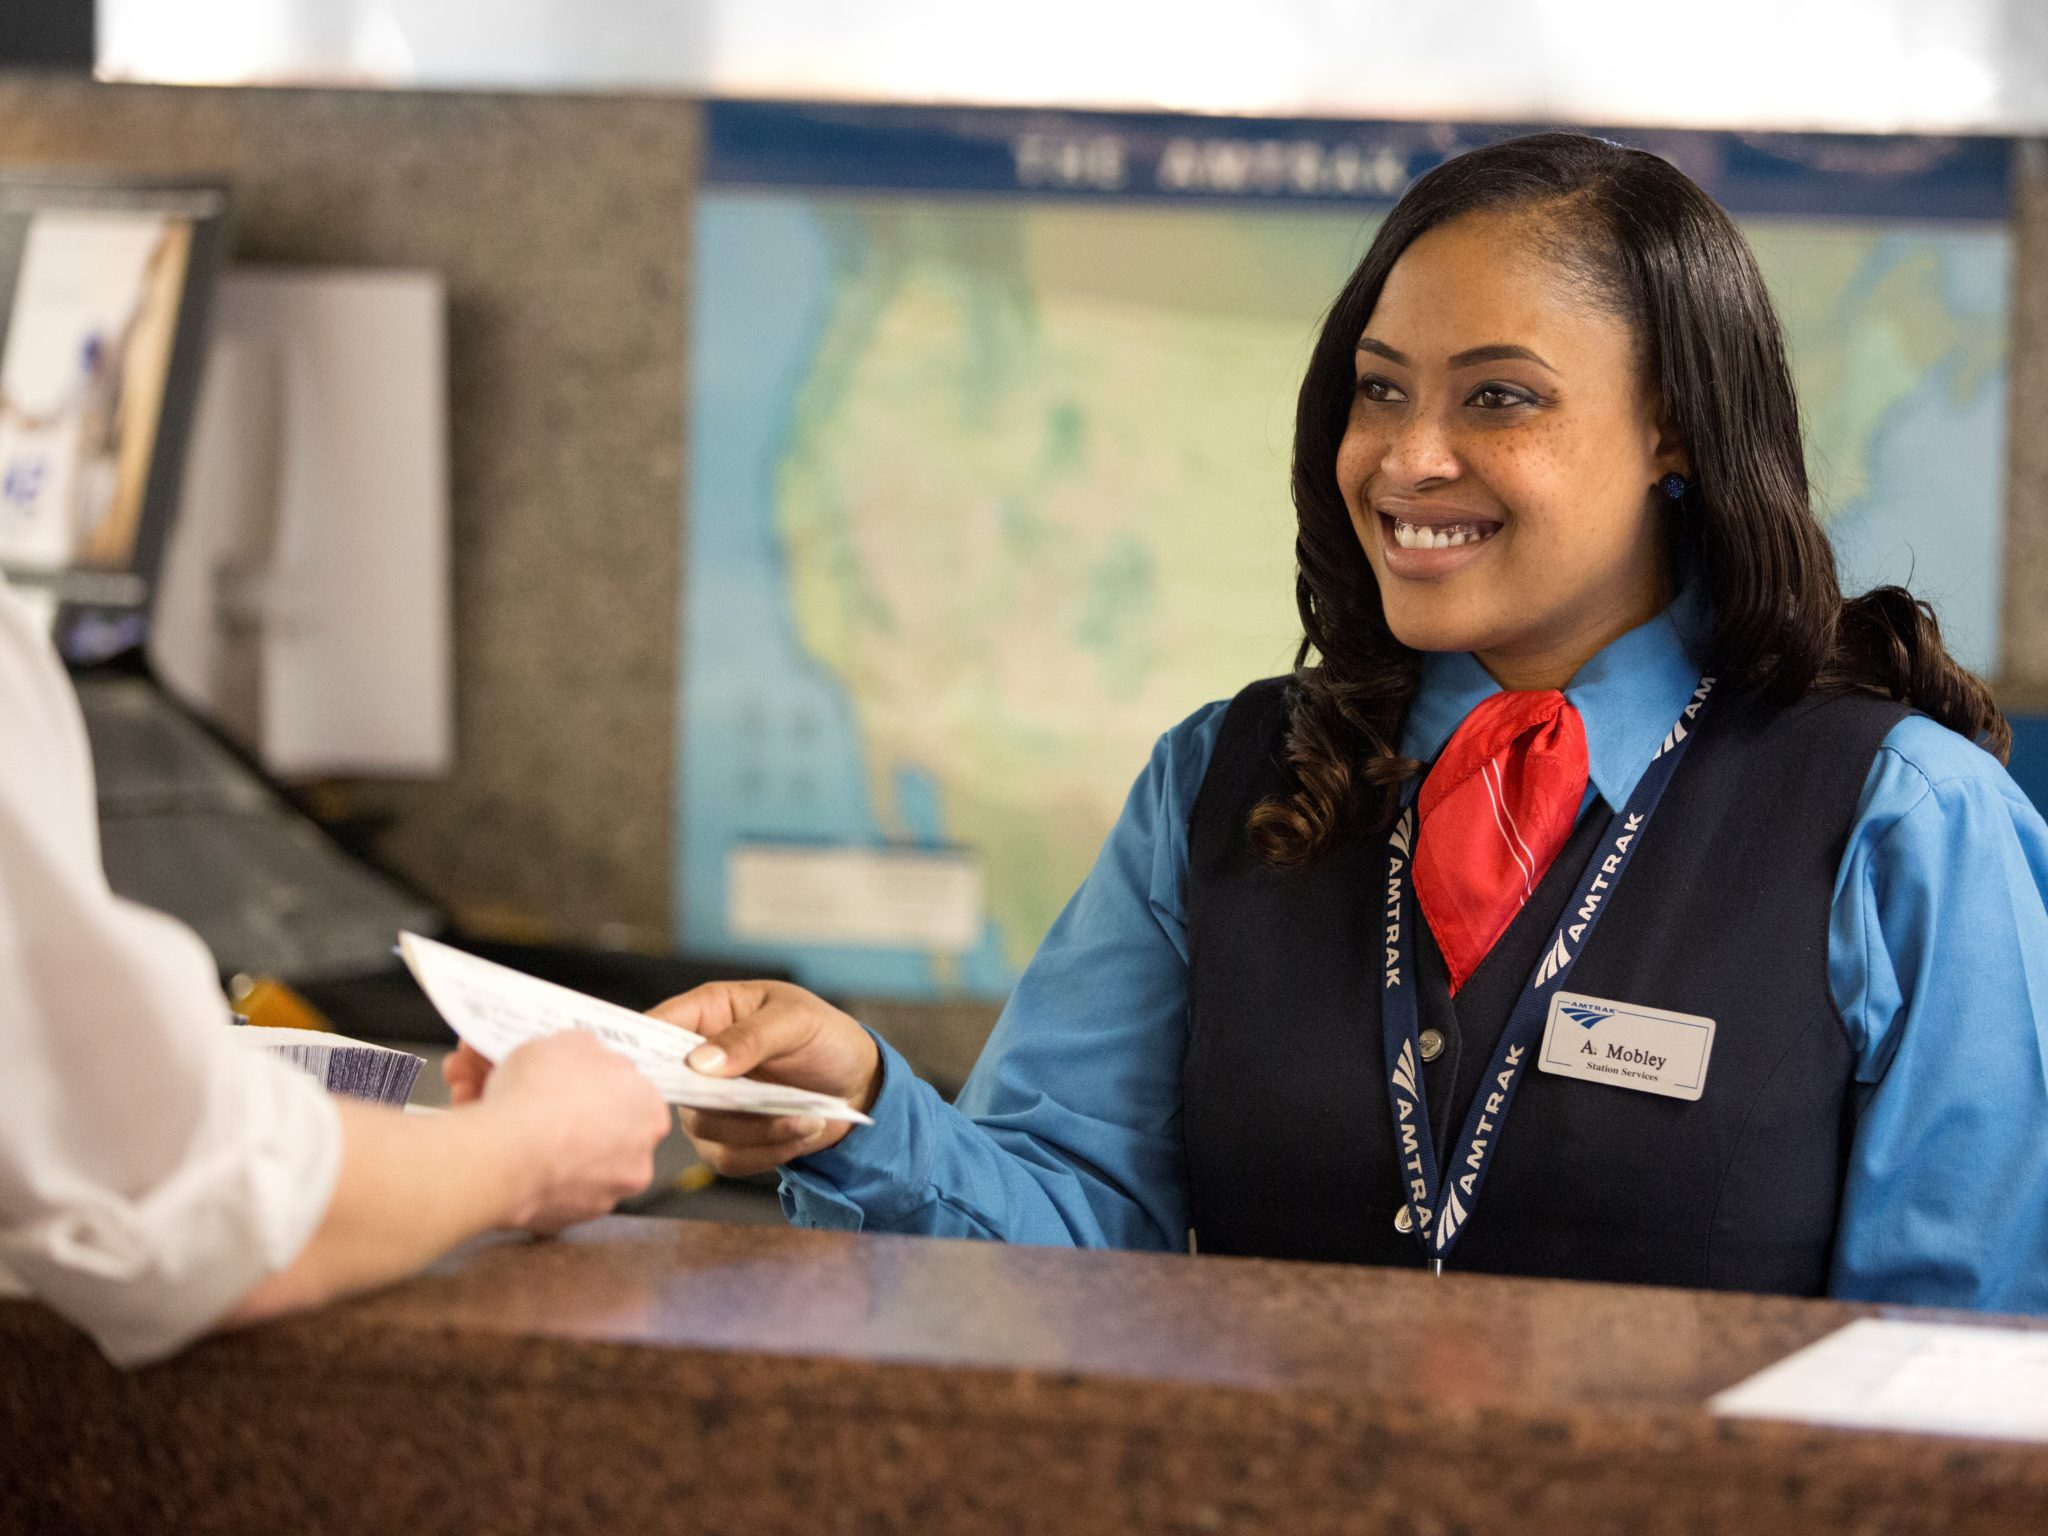 Amtrak Ticket Agent